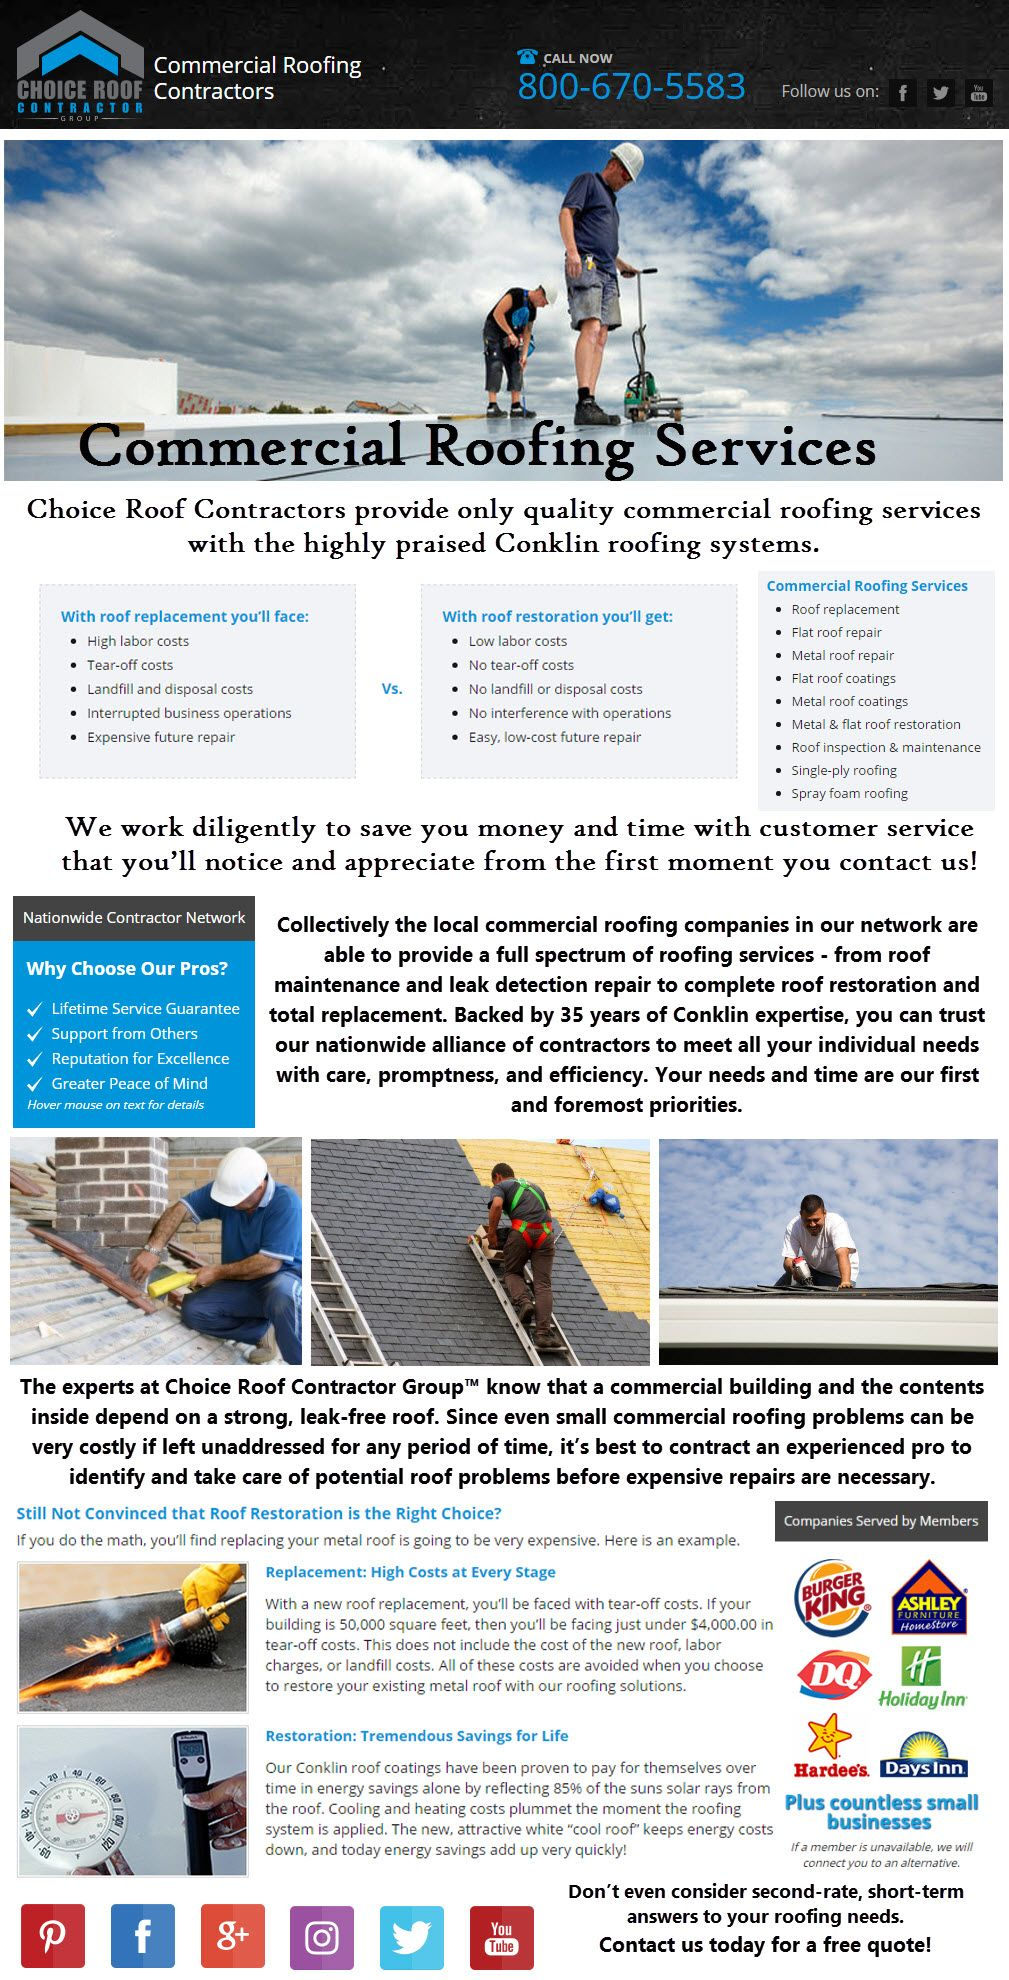 Pin By Angelina Robort On Commercial Roofing Services Roofing Services Commercial Roofing Roofing Systems